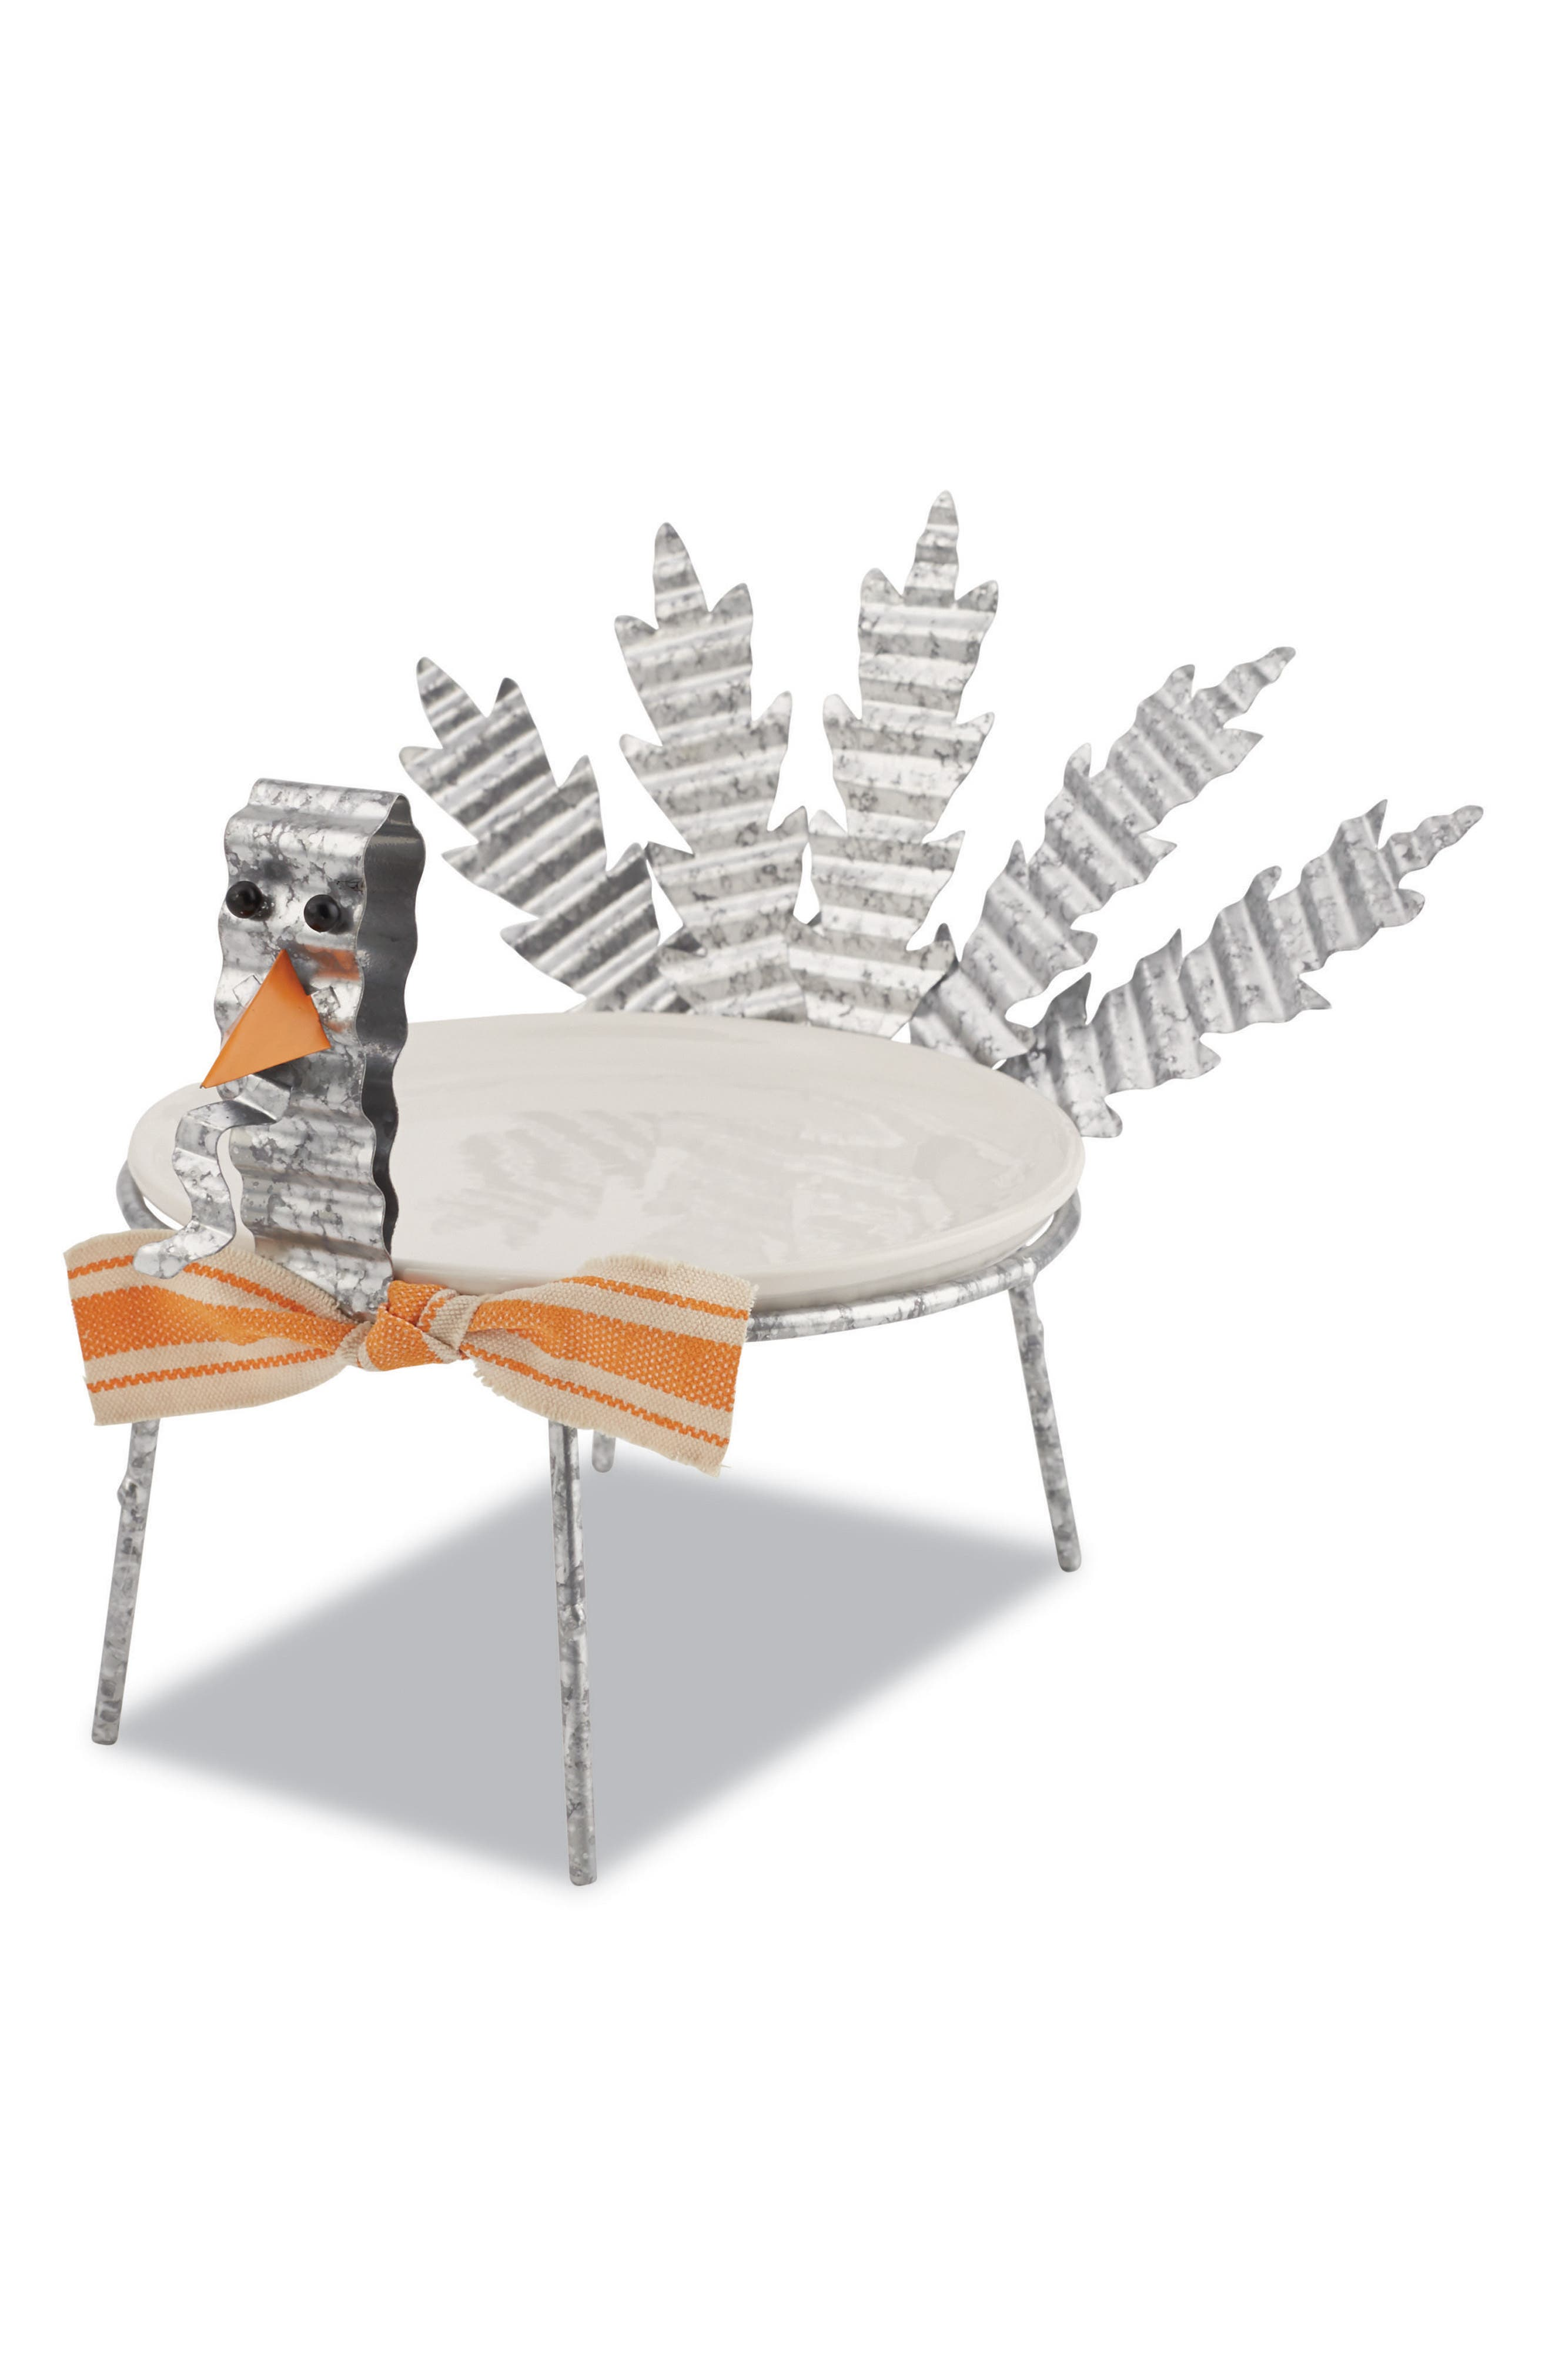 Turkey Plate & Stand Set,                             Main thumbnail 1, color,                             040